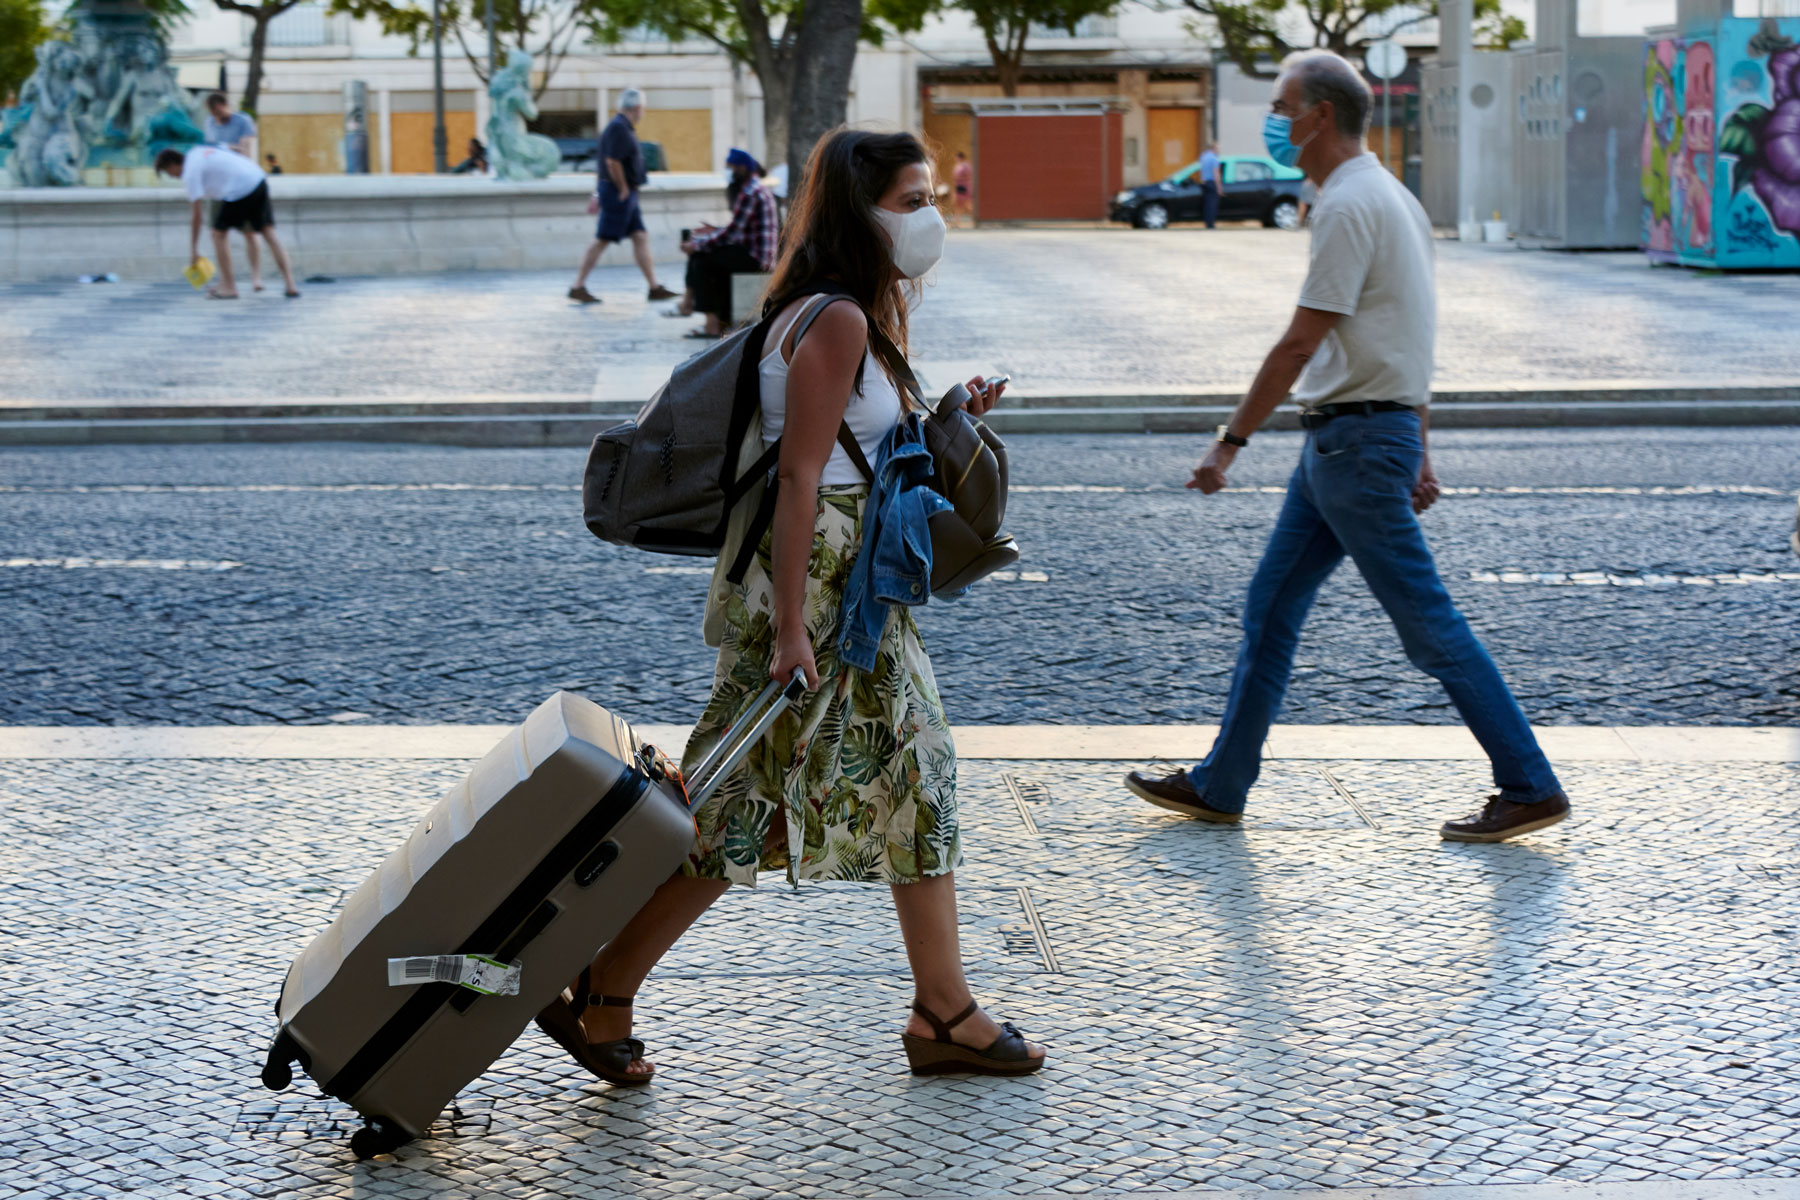 woman walking down the street pulling a suitcase